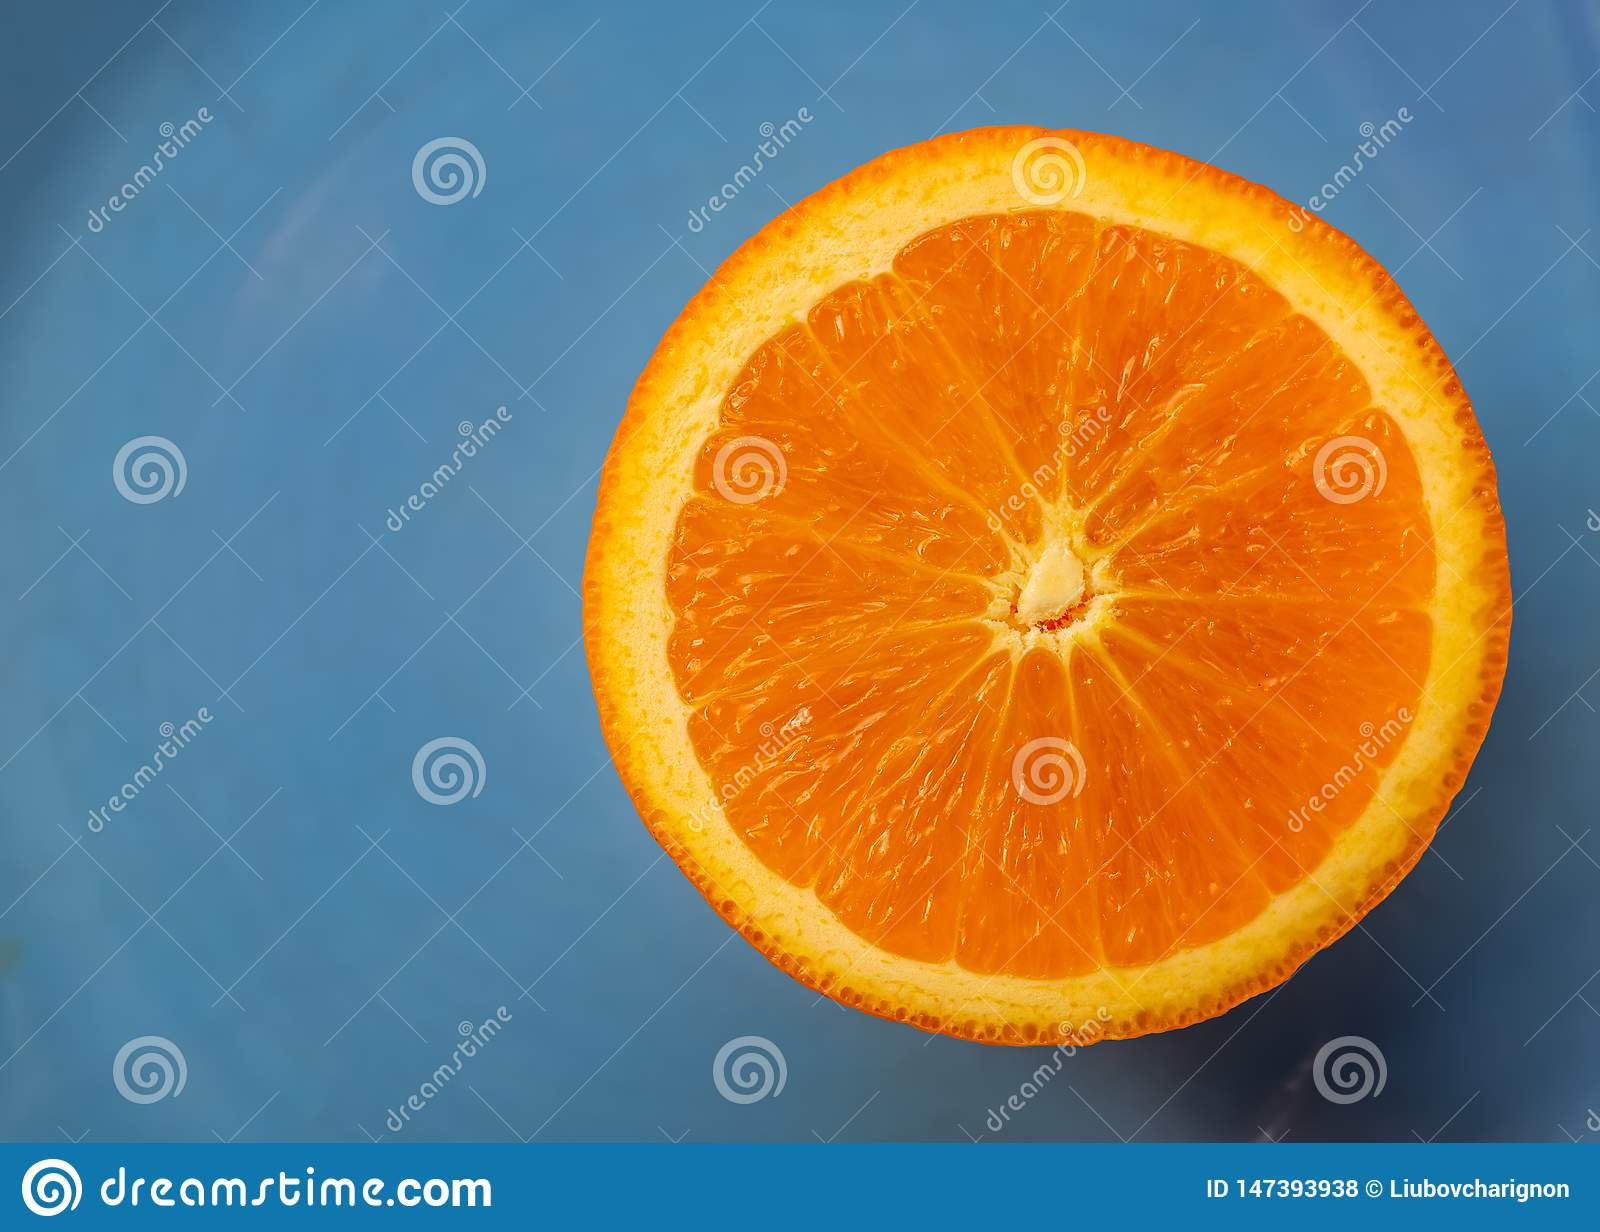 Blue background with fruit citrus an orange or half  tangerine. Macro image and close-up, concept for healthy food.